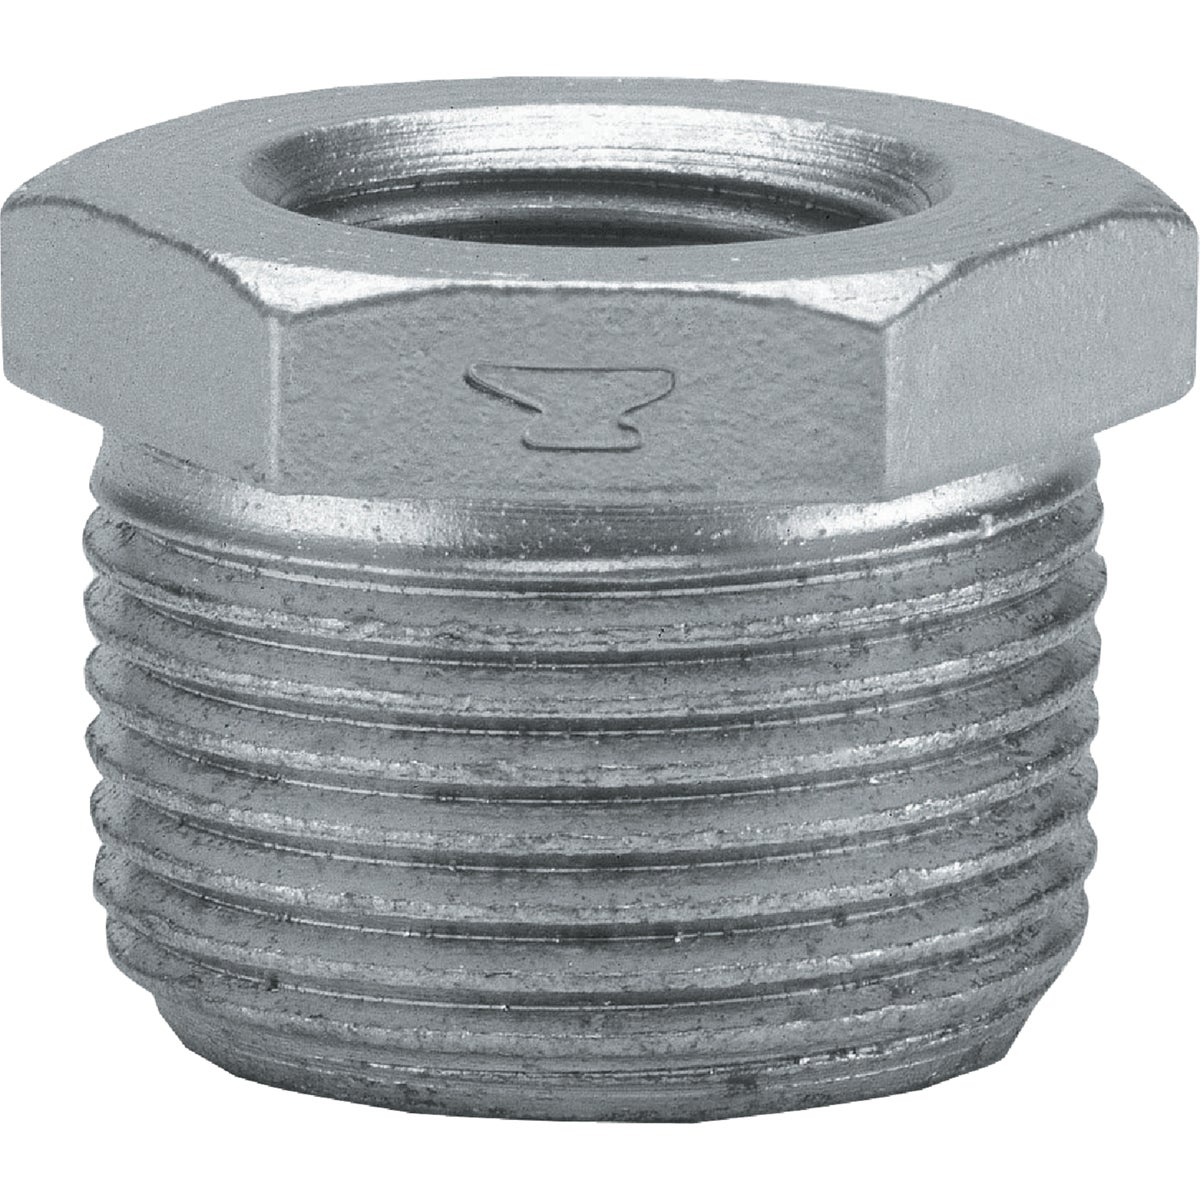 3/4X3/8 GALV BUSHING - 8700130654 by Anvil International